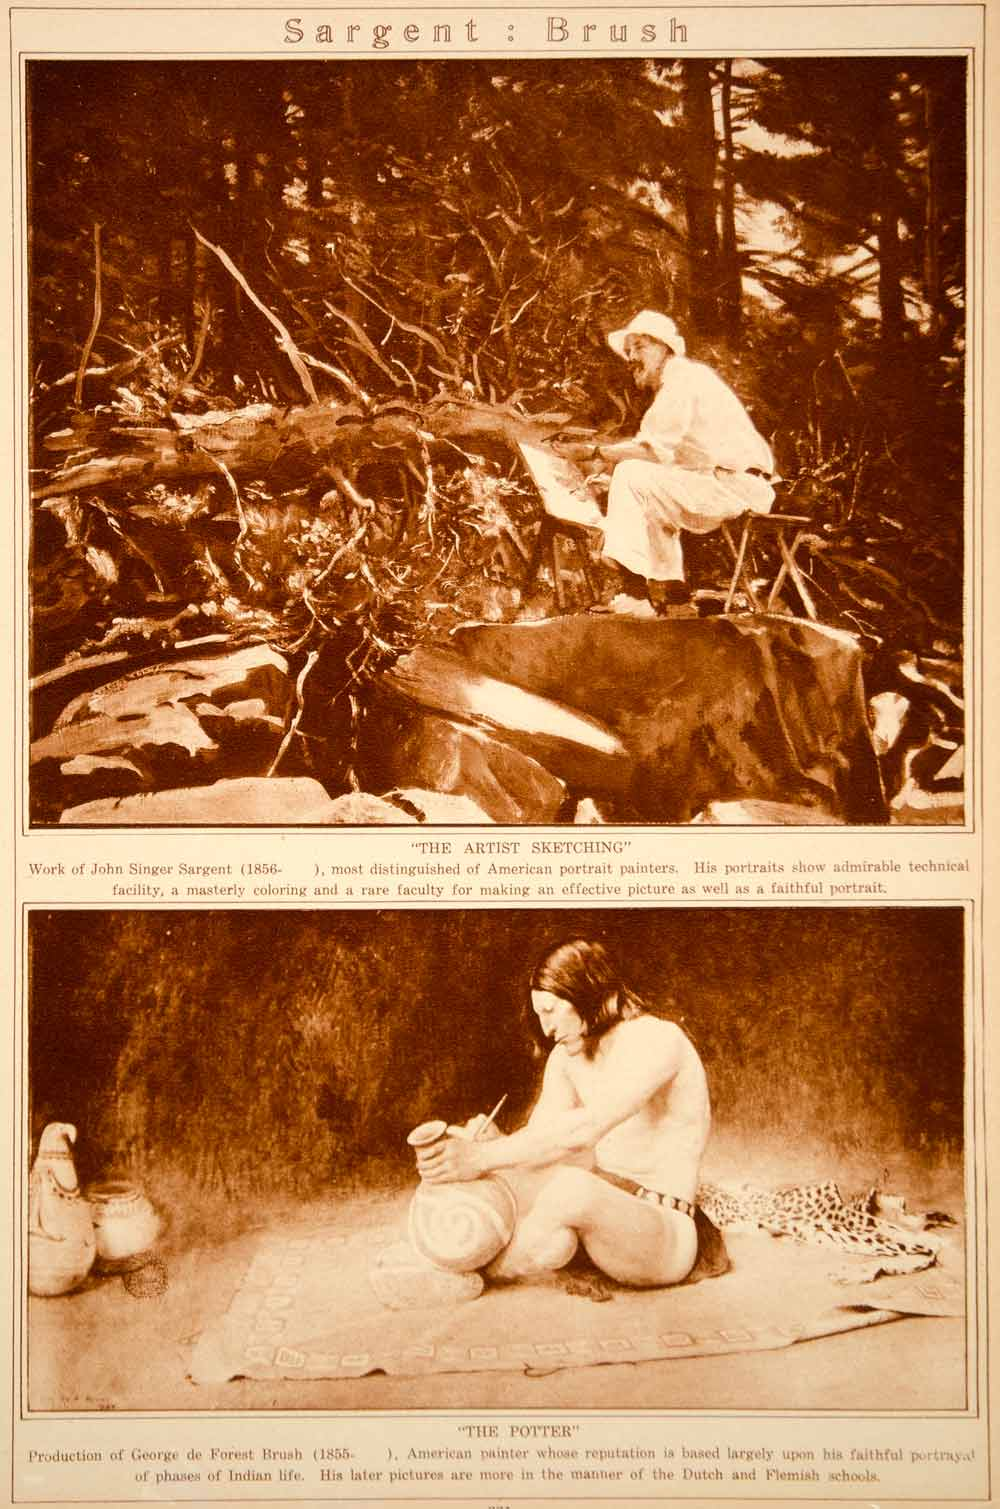 1923 Rotogravure John Singer Sargent George de Forest Brush Indian Potter Art